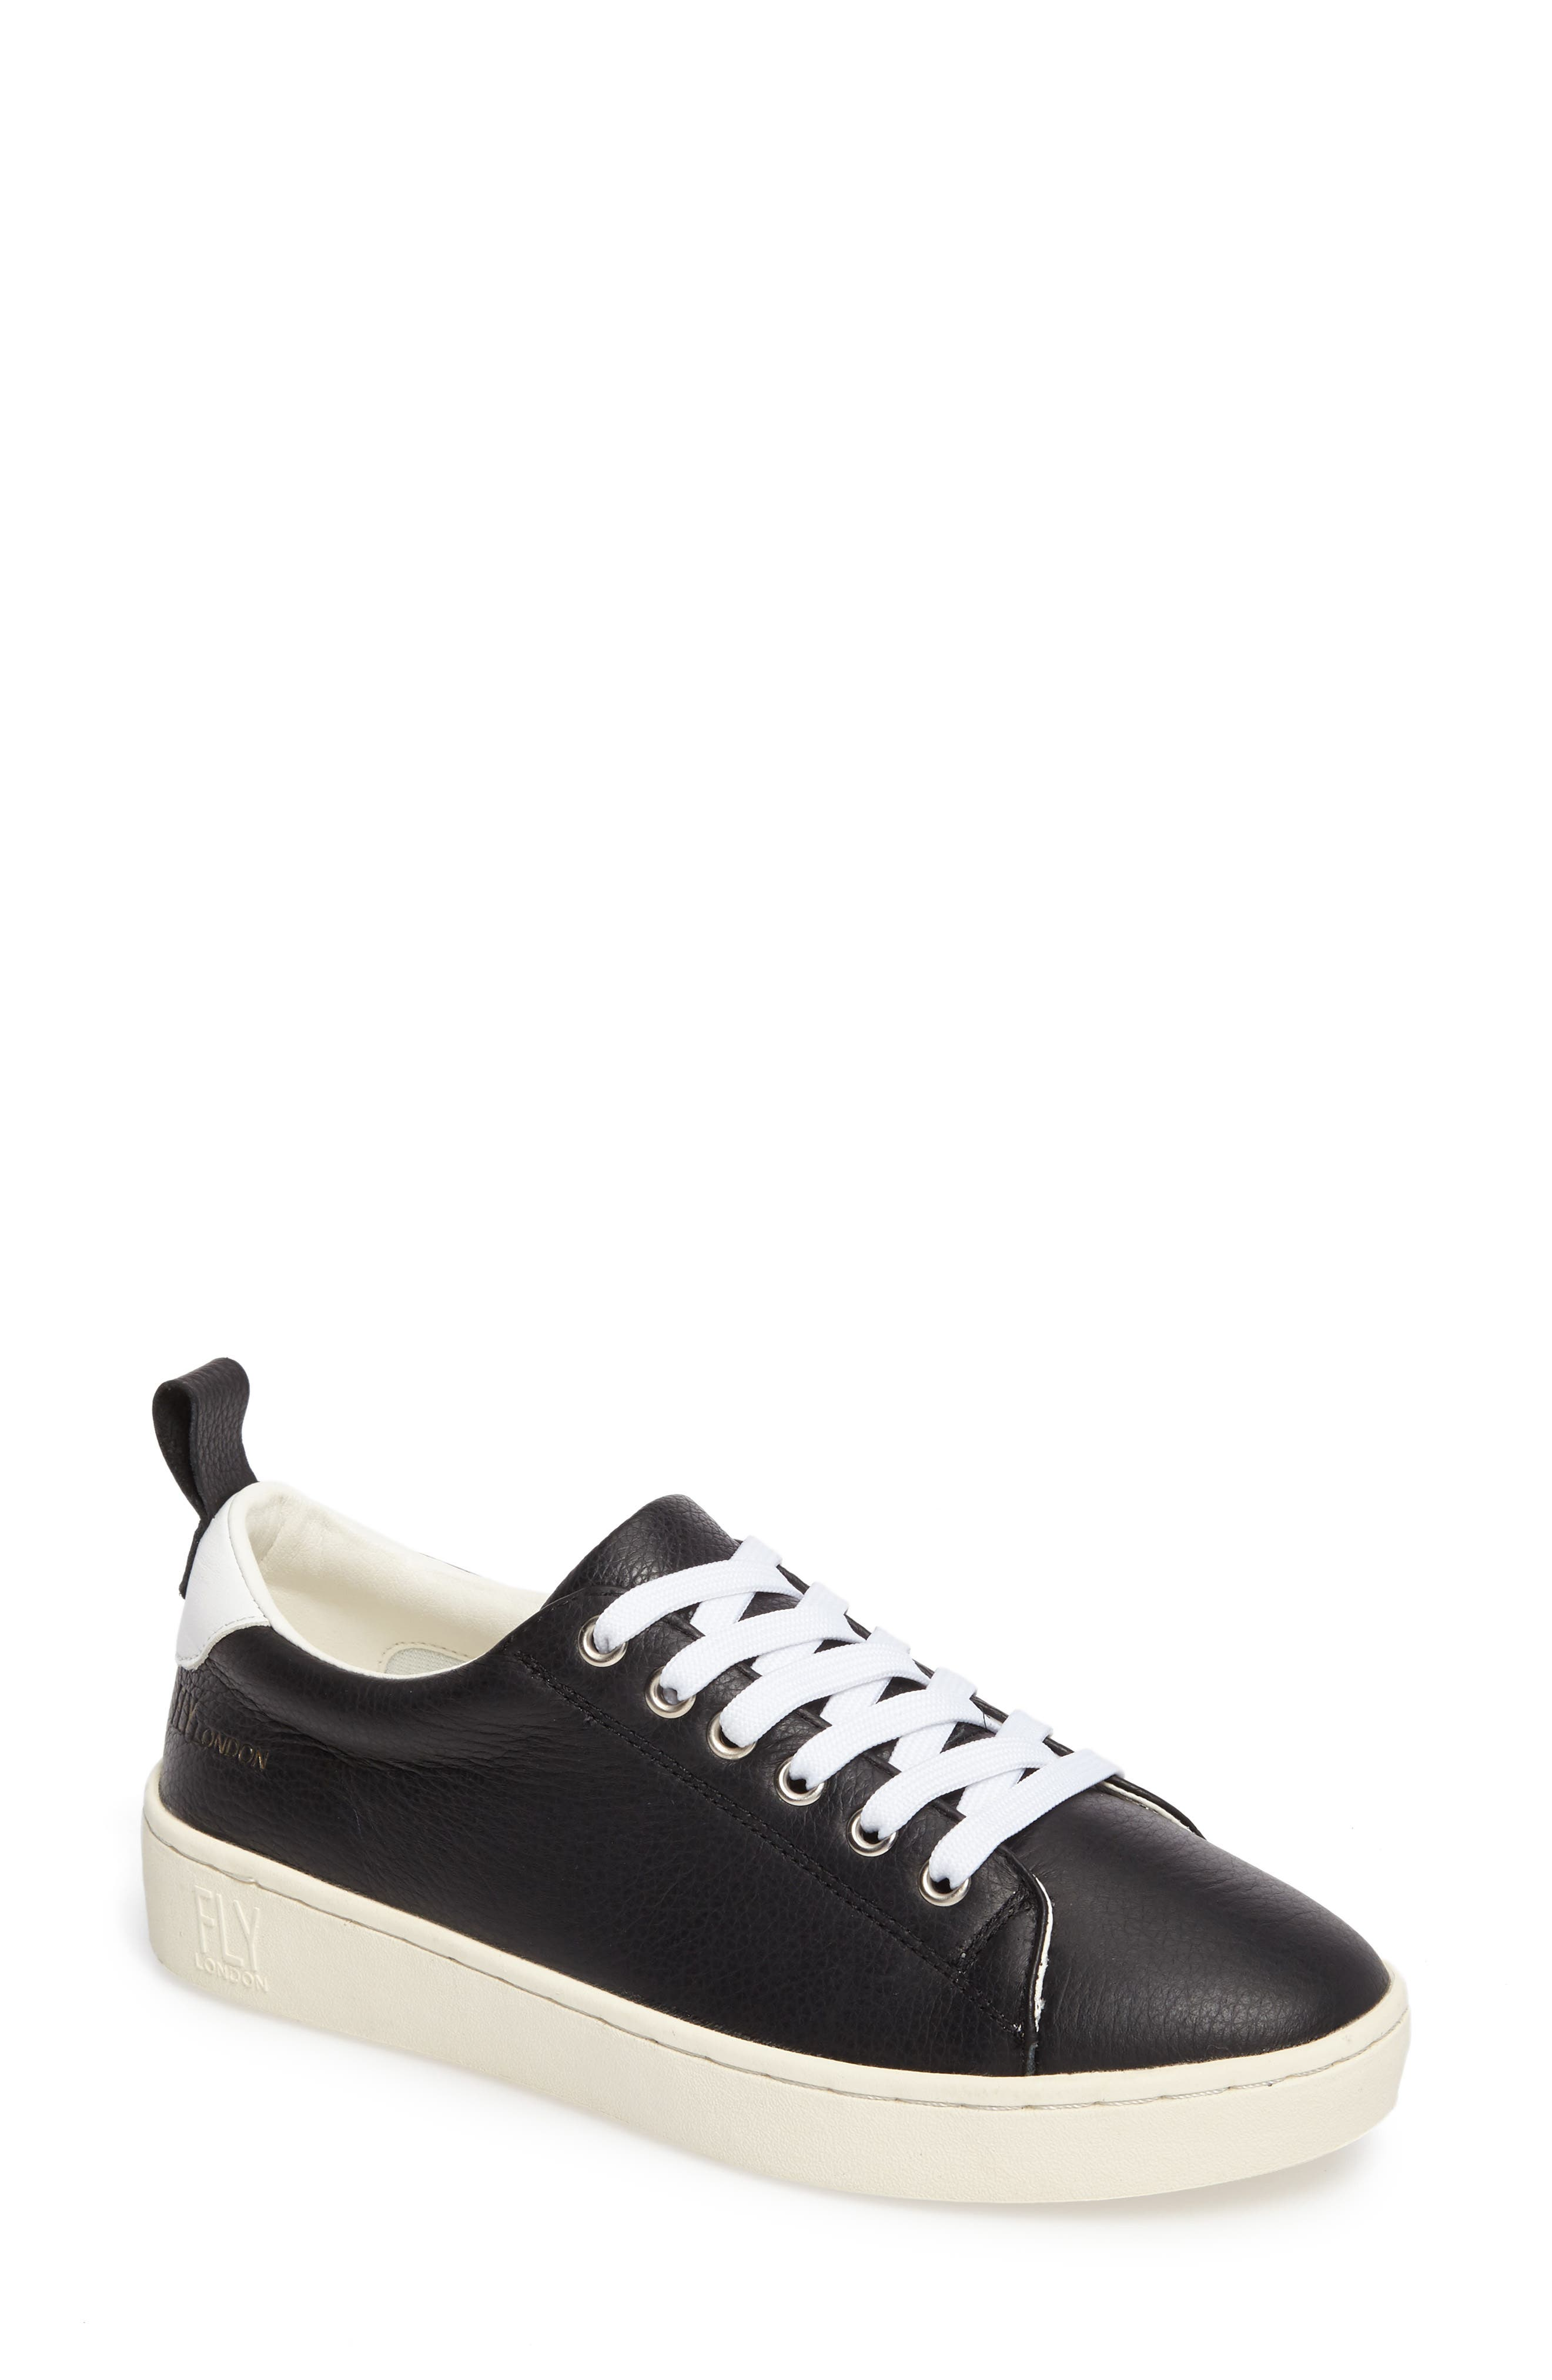 Maco Sneaker,                         Main,                         color, 001